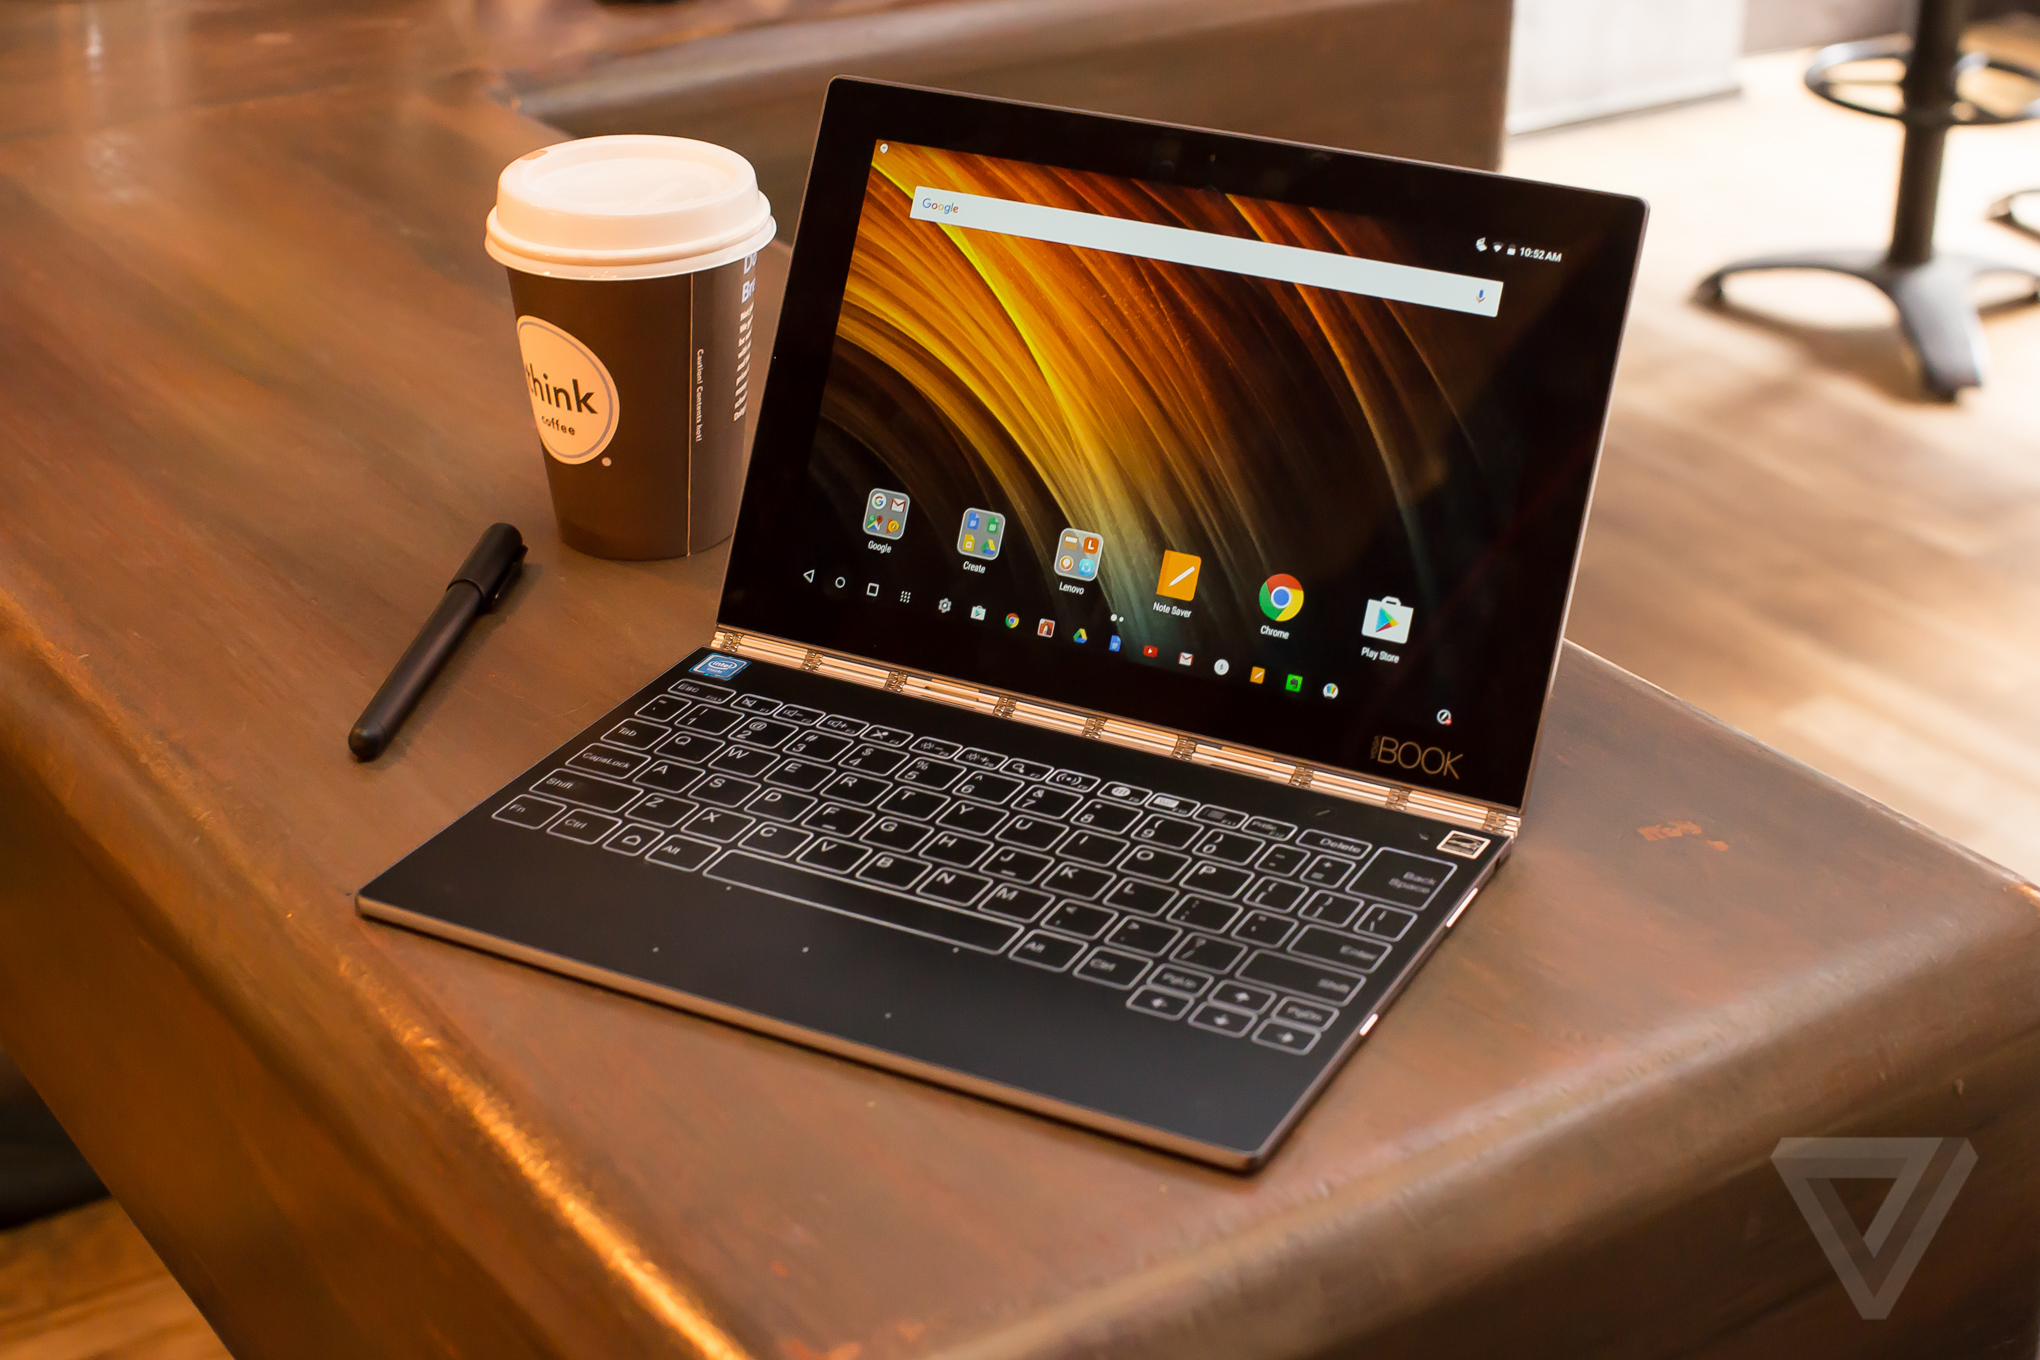 Lenovo Yoga Book Review The Unbearable Lightness Of Computing Microsoft Surface Charger Wiring Diagram Verge